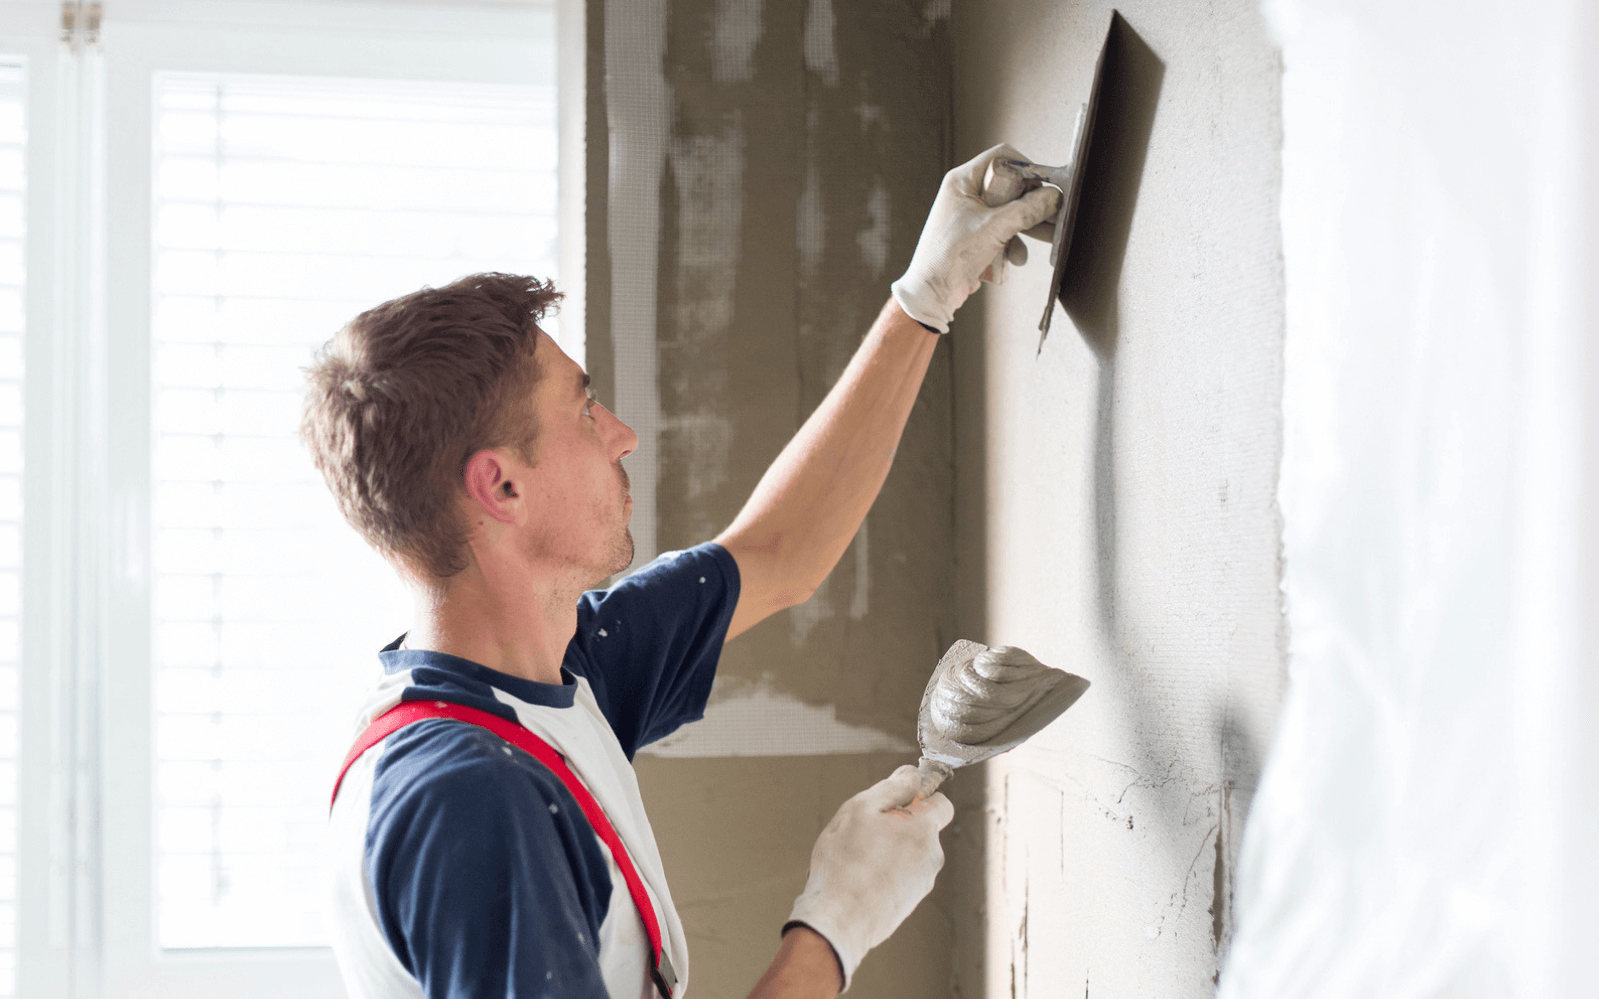 Young man plastering wall